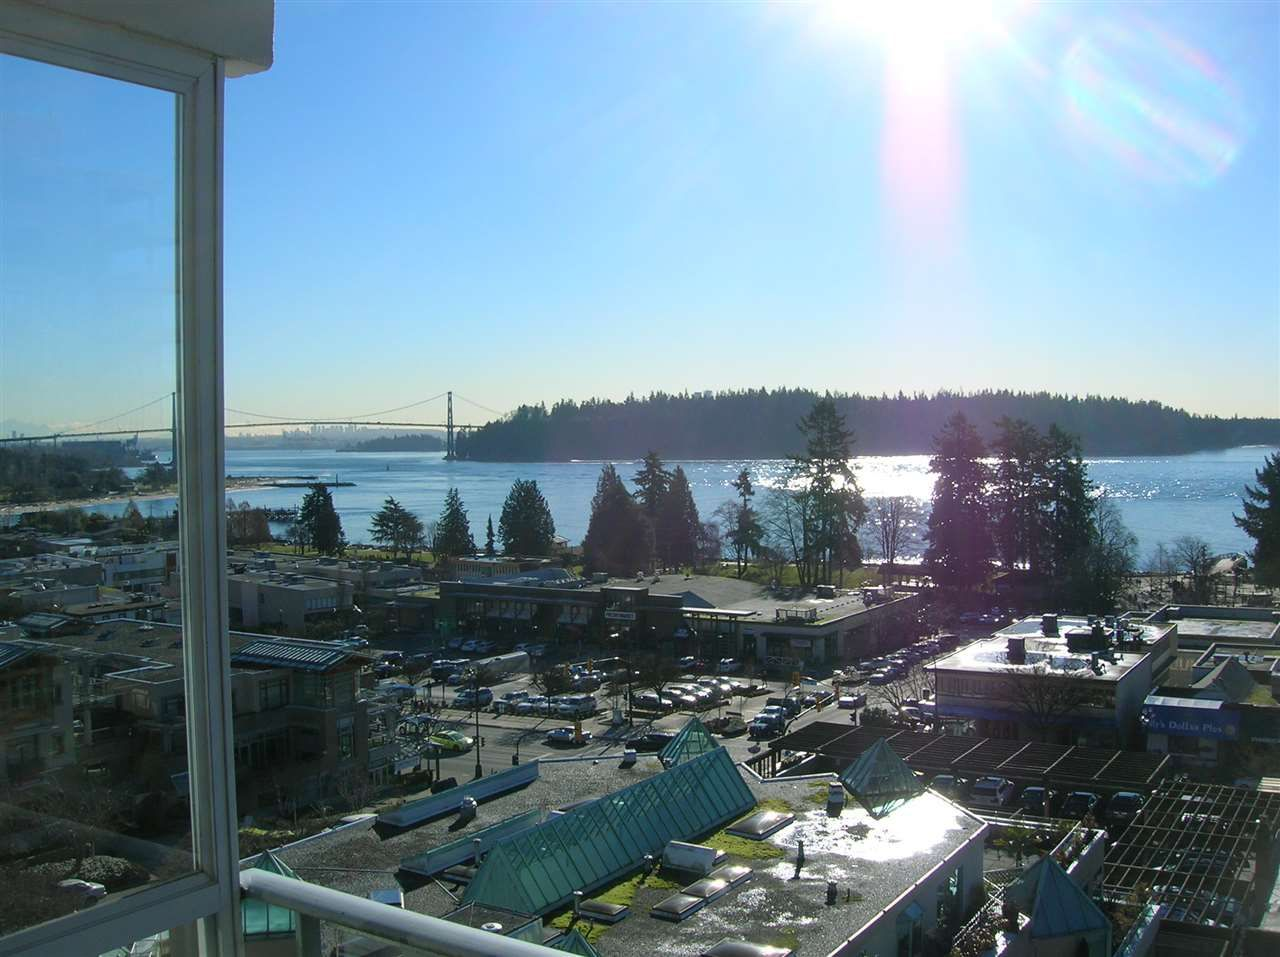 """Main Photo: 602 1730 DUCHESS Avenue in West Vancouver: Ambleside Condo for sale in """"Wedgewood Terraces"""" : MLS®# R2135595"""